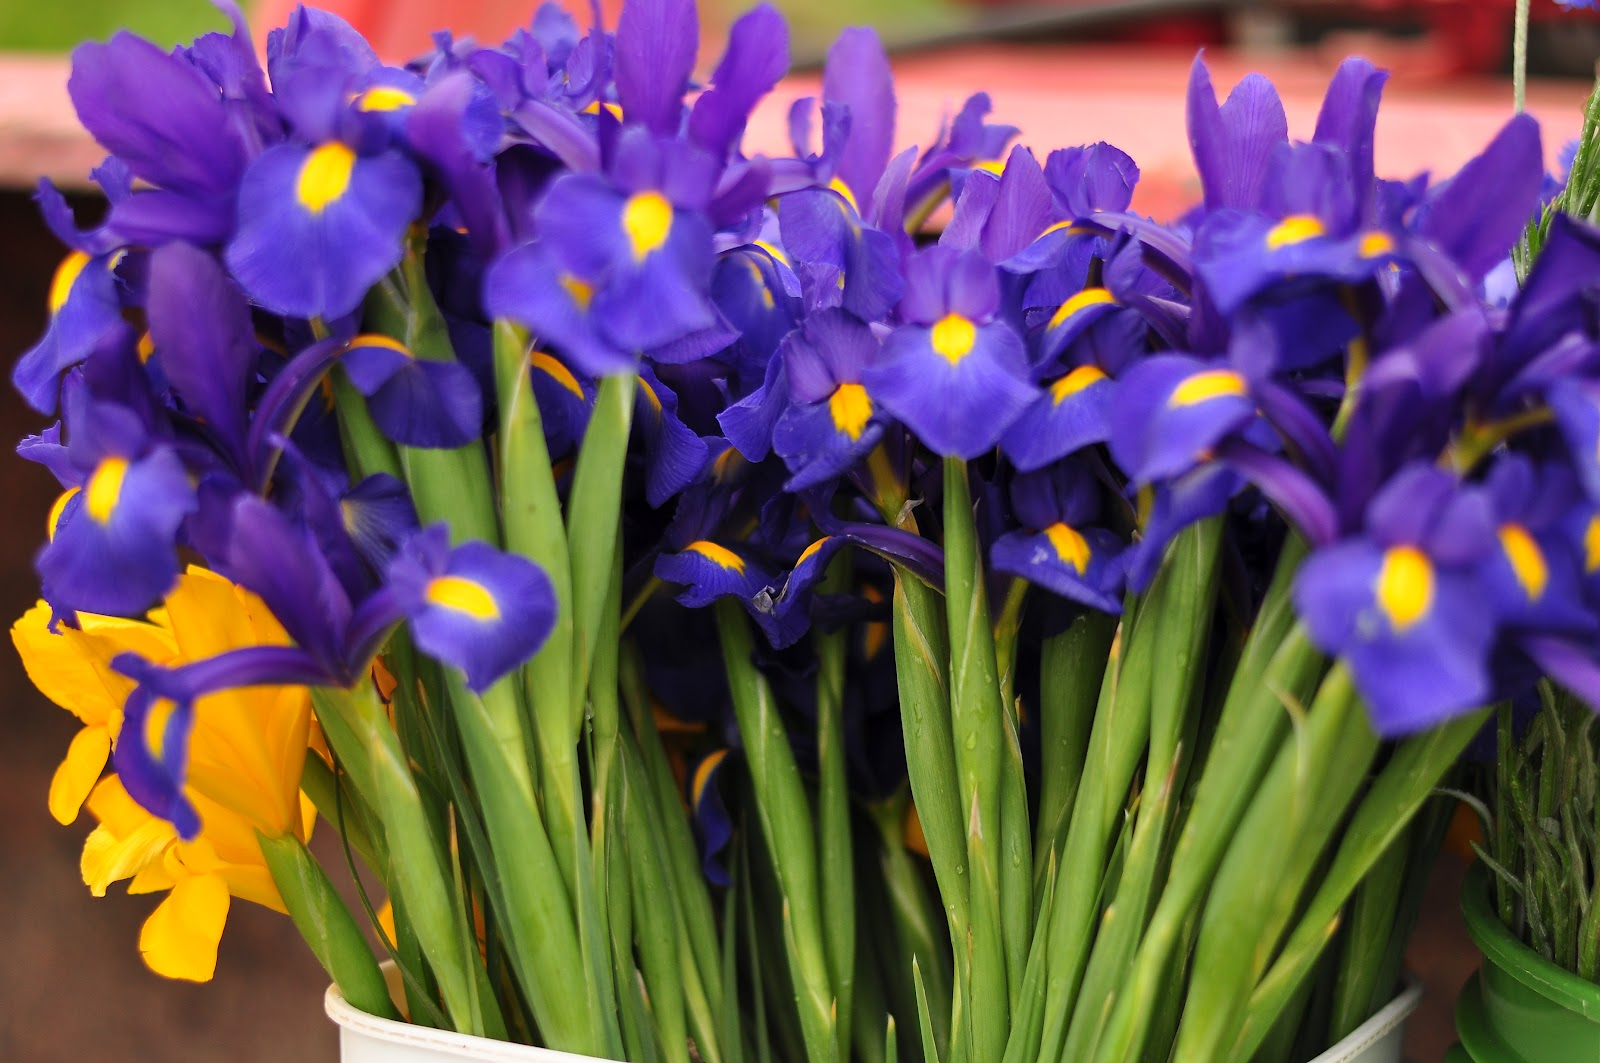 Blue dragonfly cut flower farm 030915 spring flowers 030915 spring flowers dhlflorist Choice Image